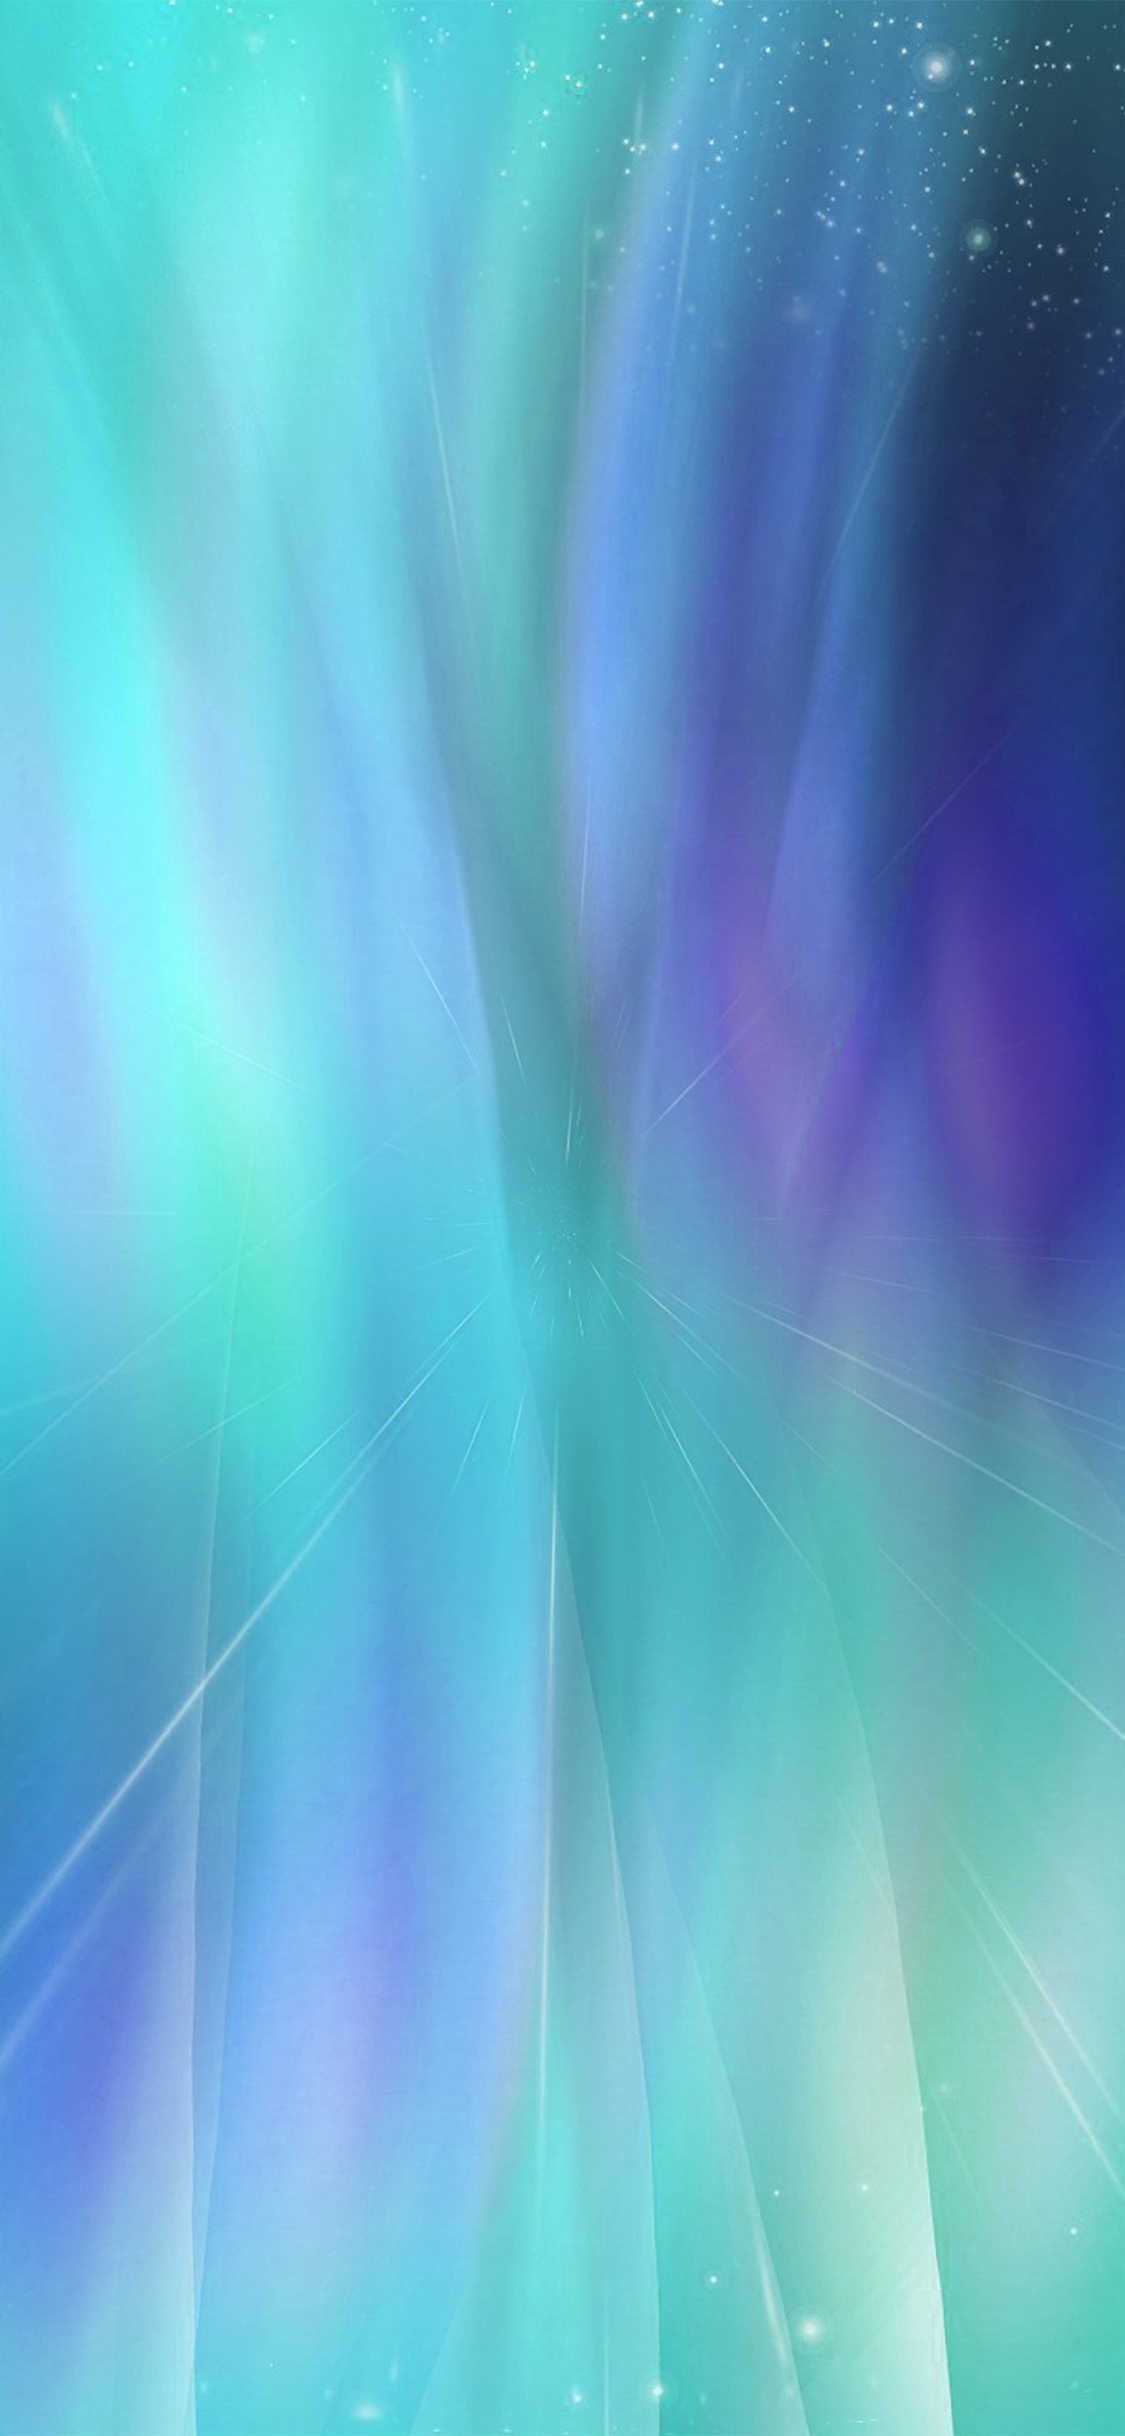 iPhoneXpapers.com-Apple-iPhone-wallpaper-vp17-fantasy-green-blue-abstract-pattern